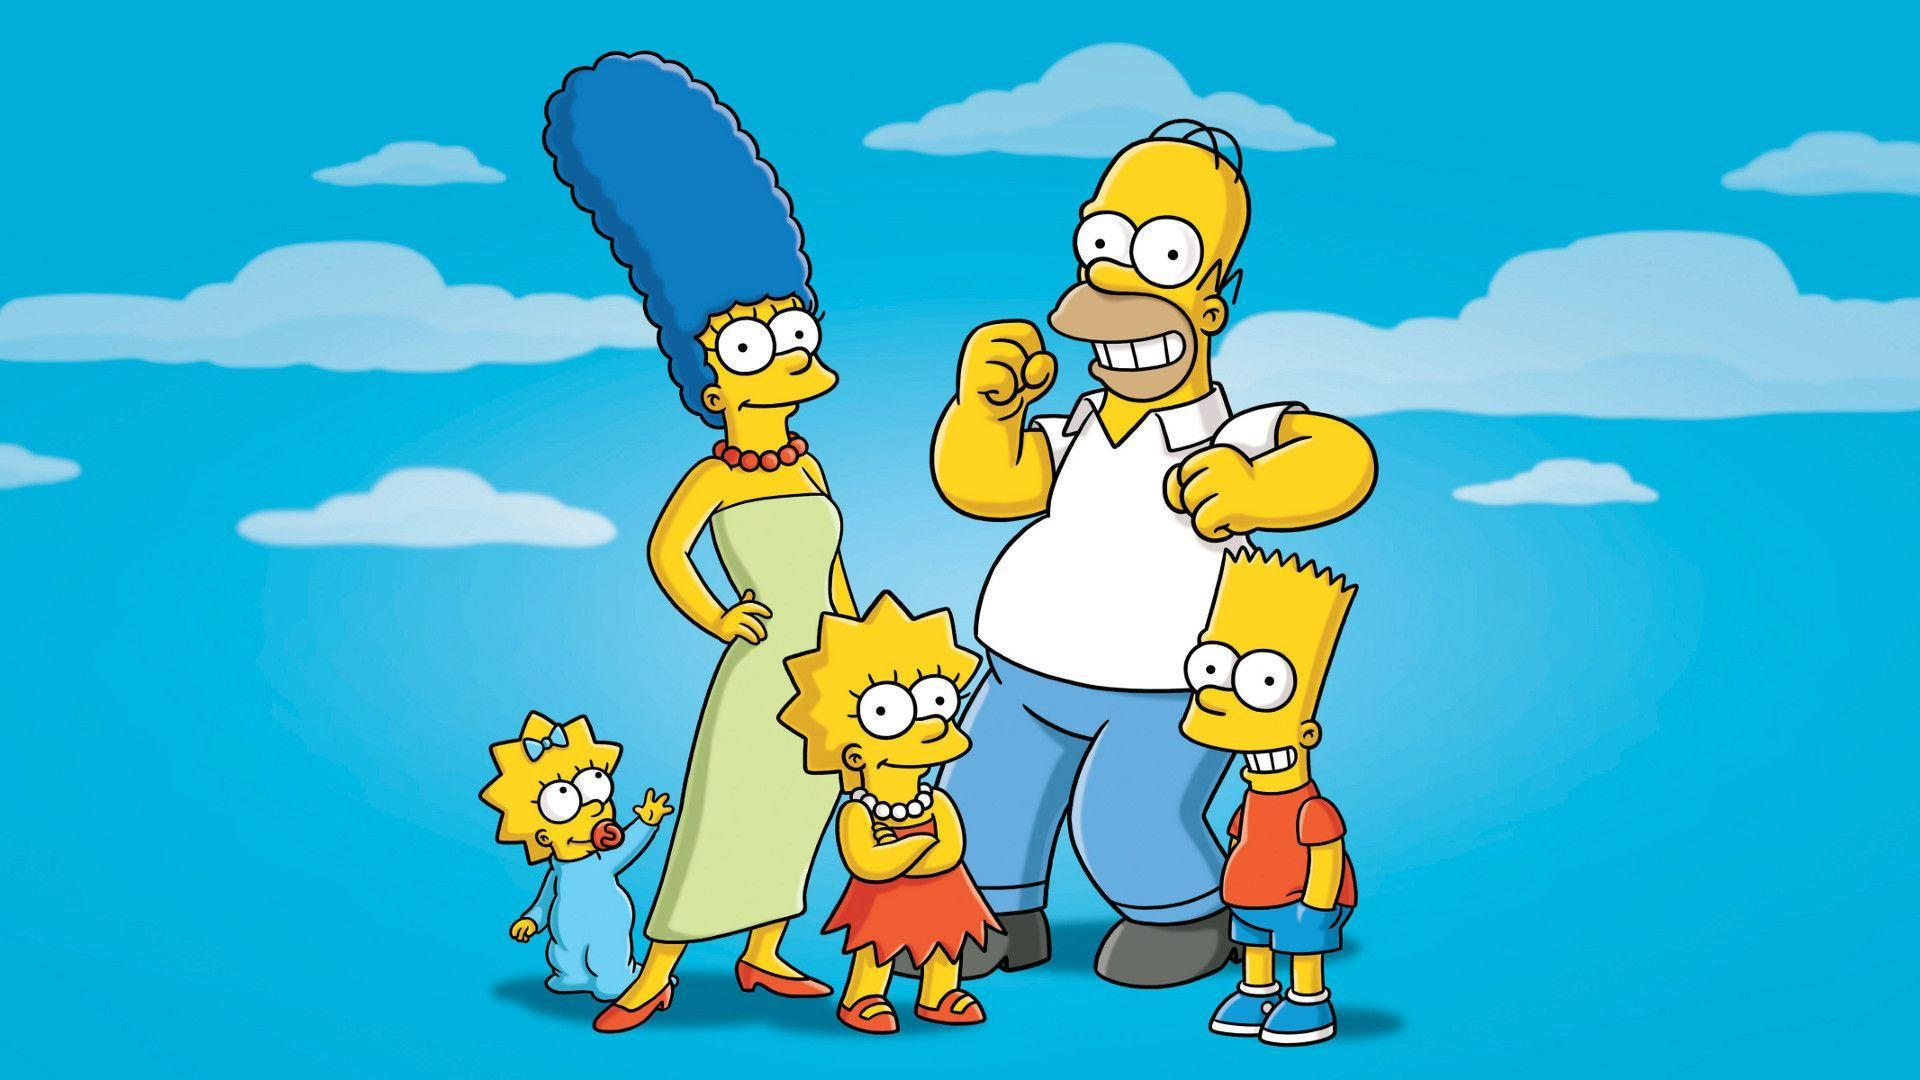 Free HD Simpsons Wallpapers | HD Wallpapers, Backgrounds, Images ...